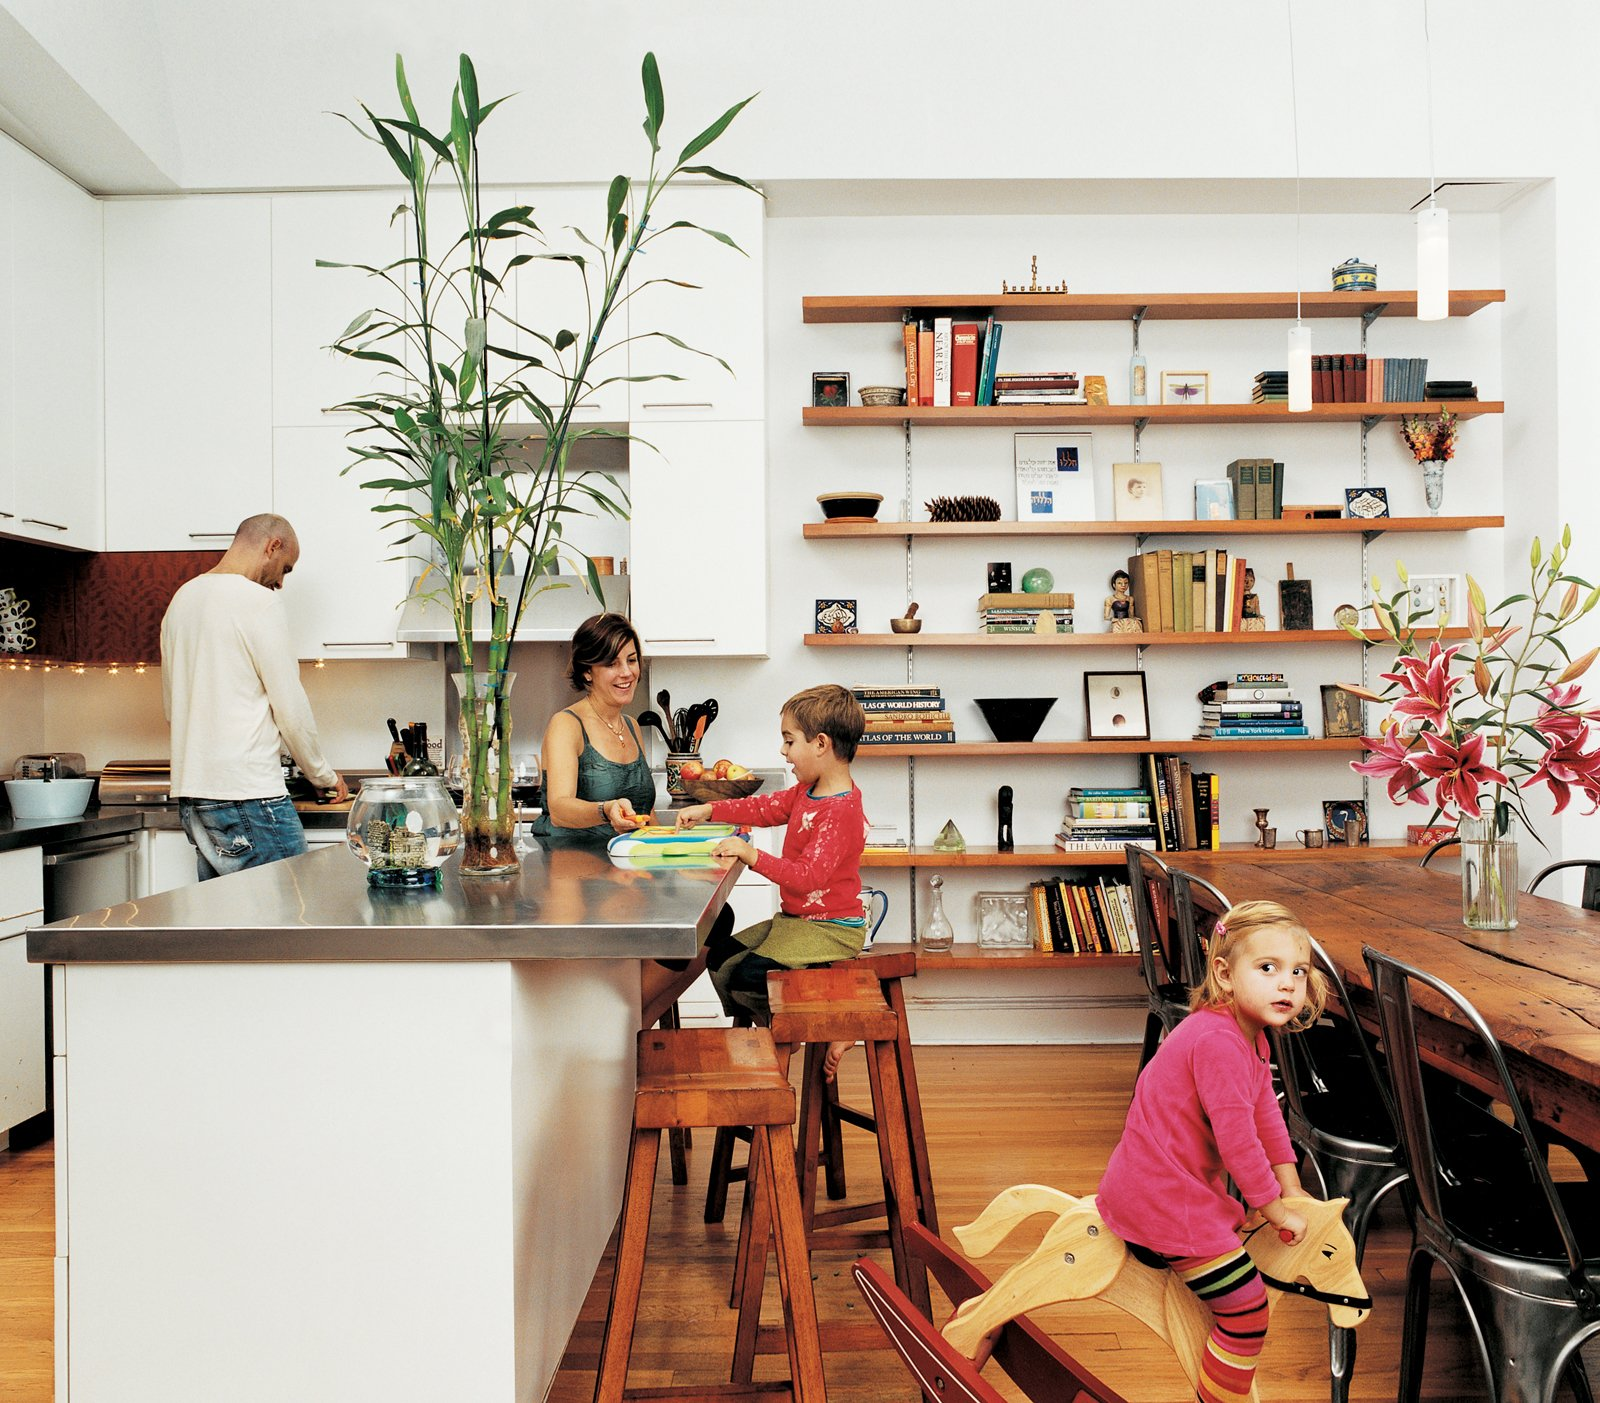 The Ogrodnik/Bardin family enjoy the pleasures of family life in the kitchen.  Photo 1 of 1 in Discuss: What Details Bring a Room to Life? from Row House Revival